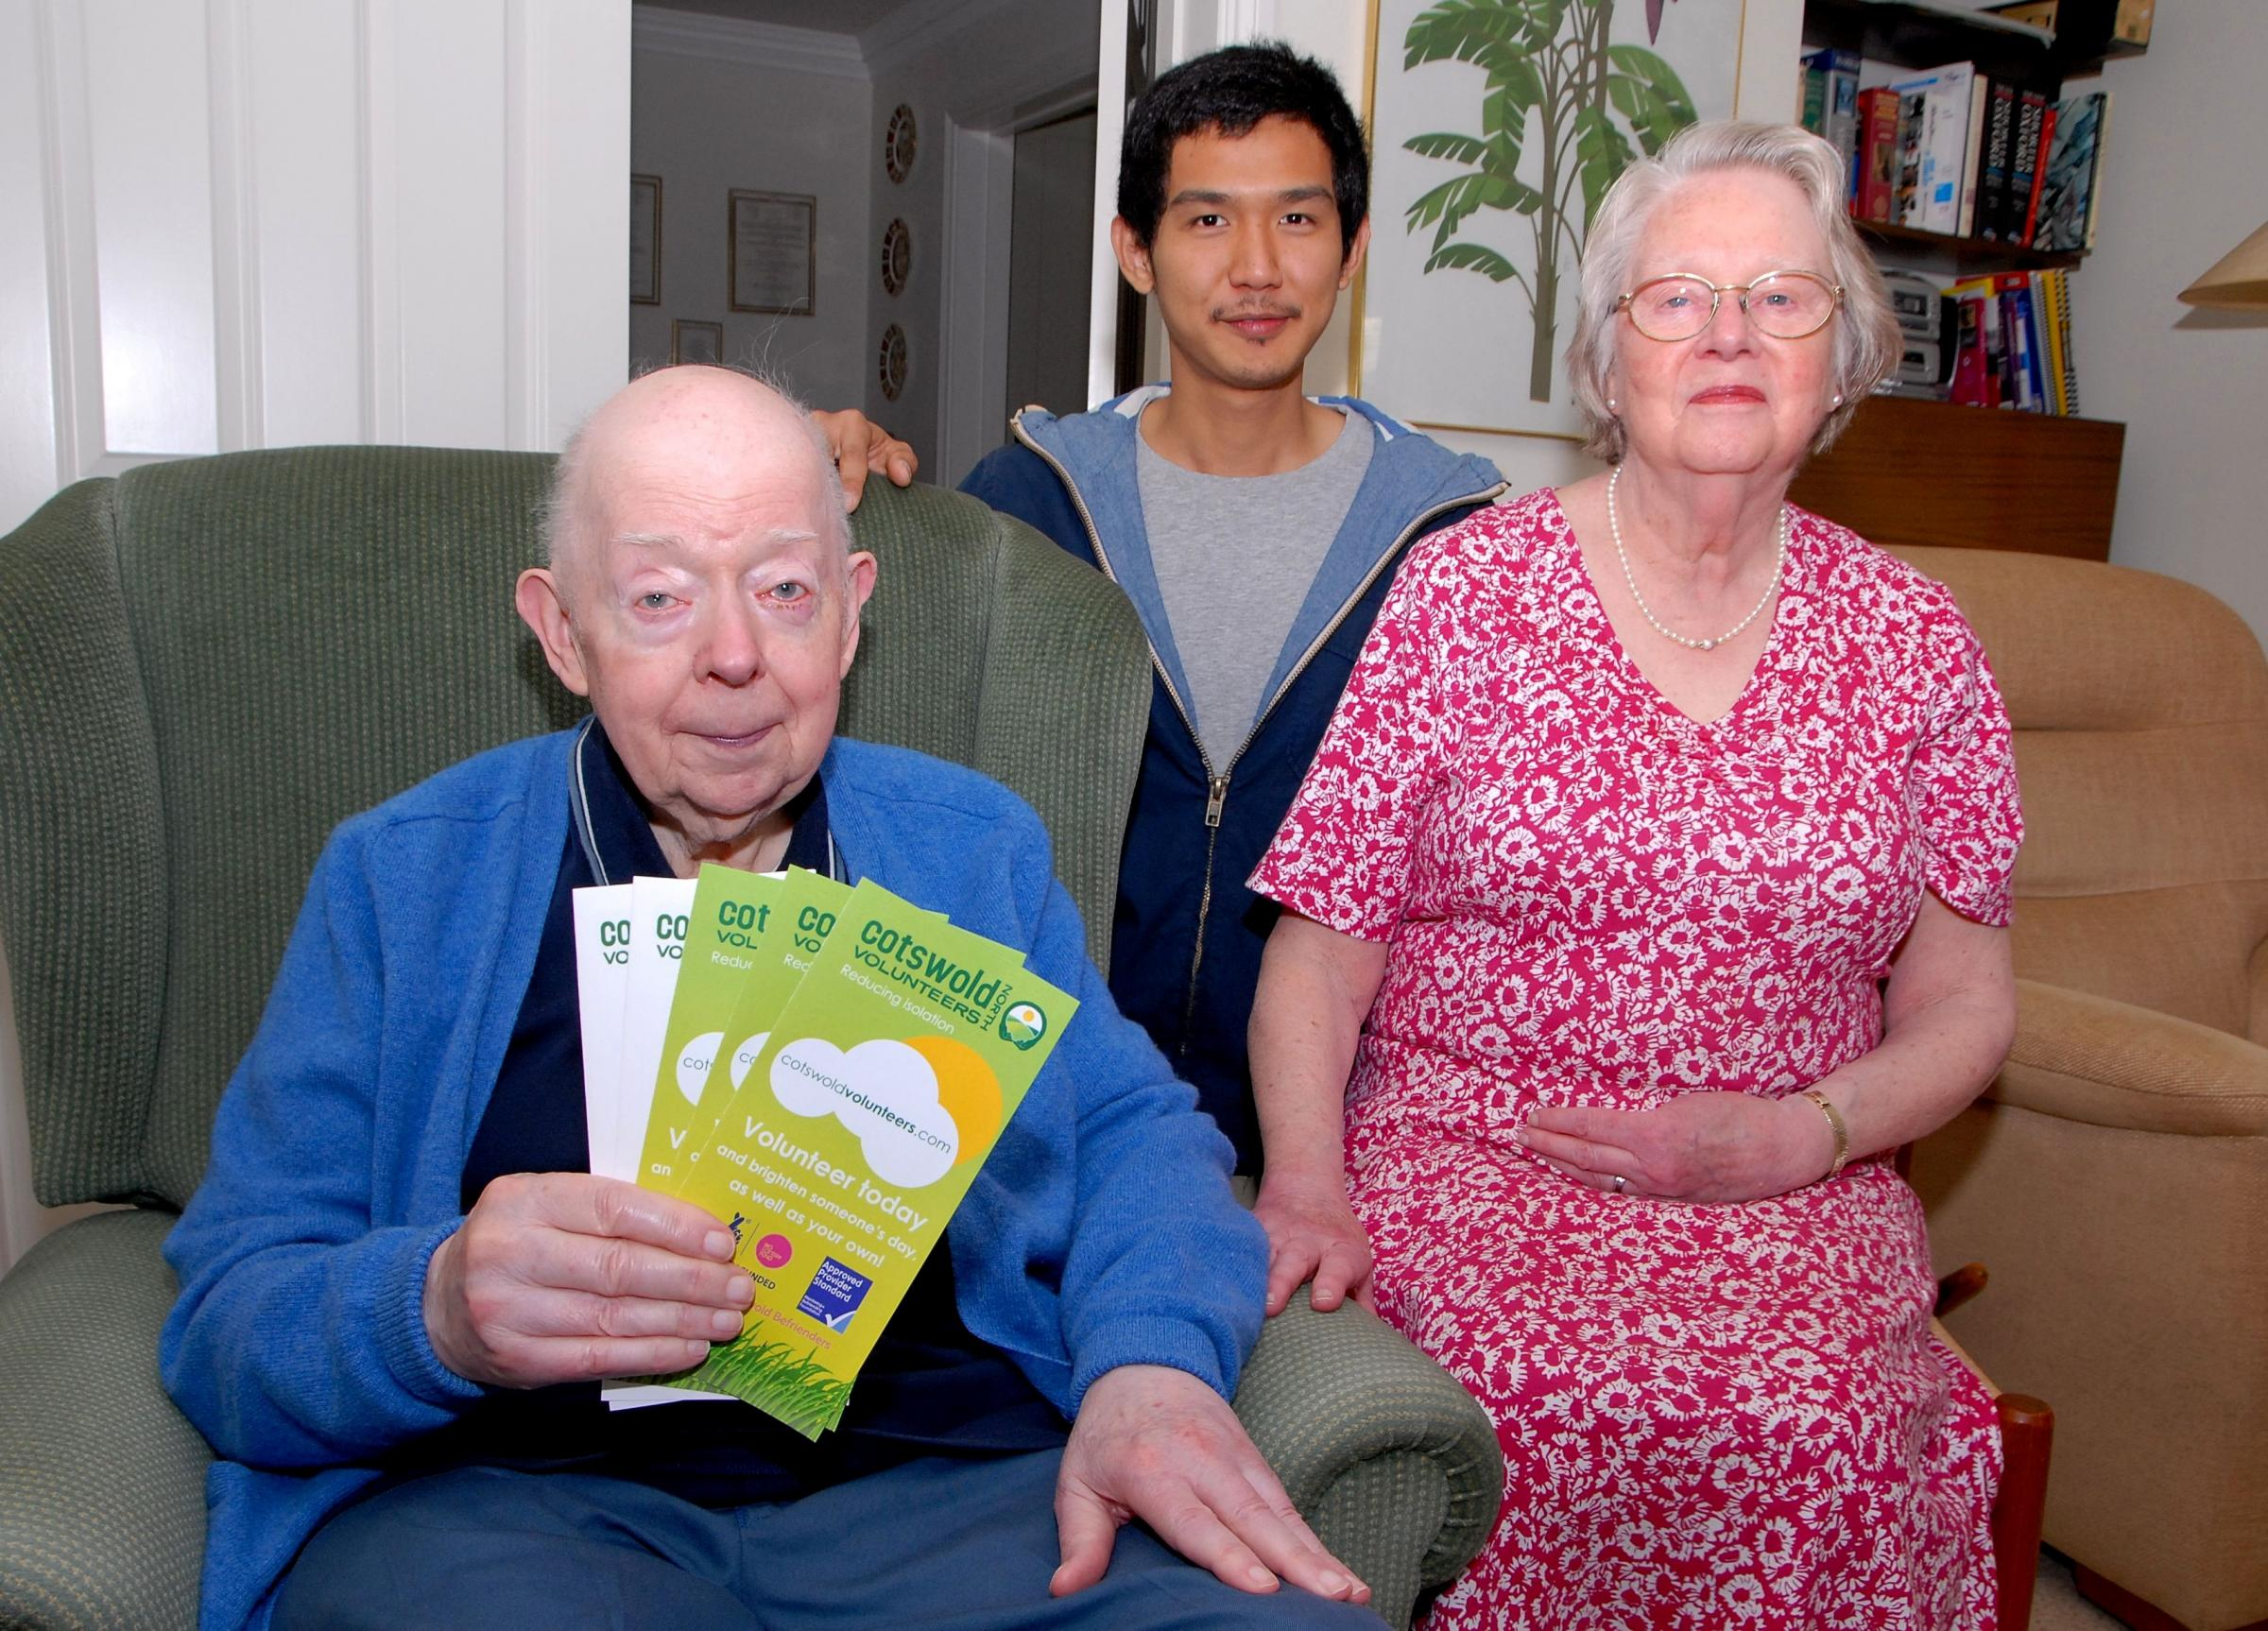 APPEAL: From left, John Hope, Hendry Lo and Margaret Hope. Cotswold Volunteers North are looking for more volunteers, Hendry helps Margaret with John.